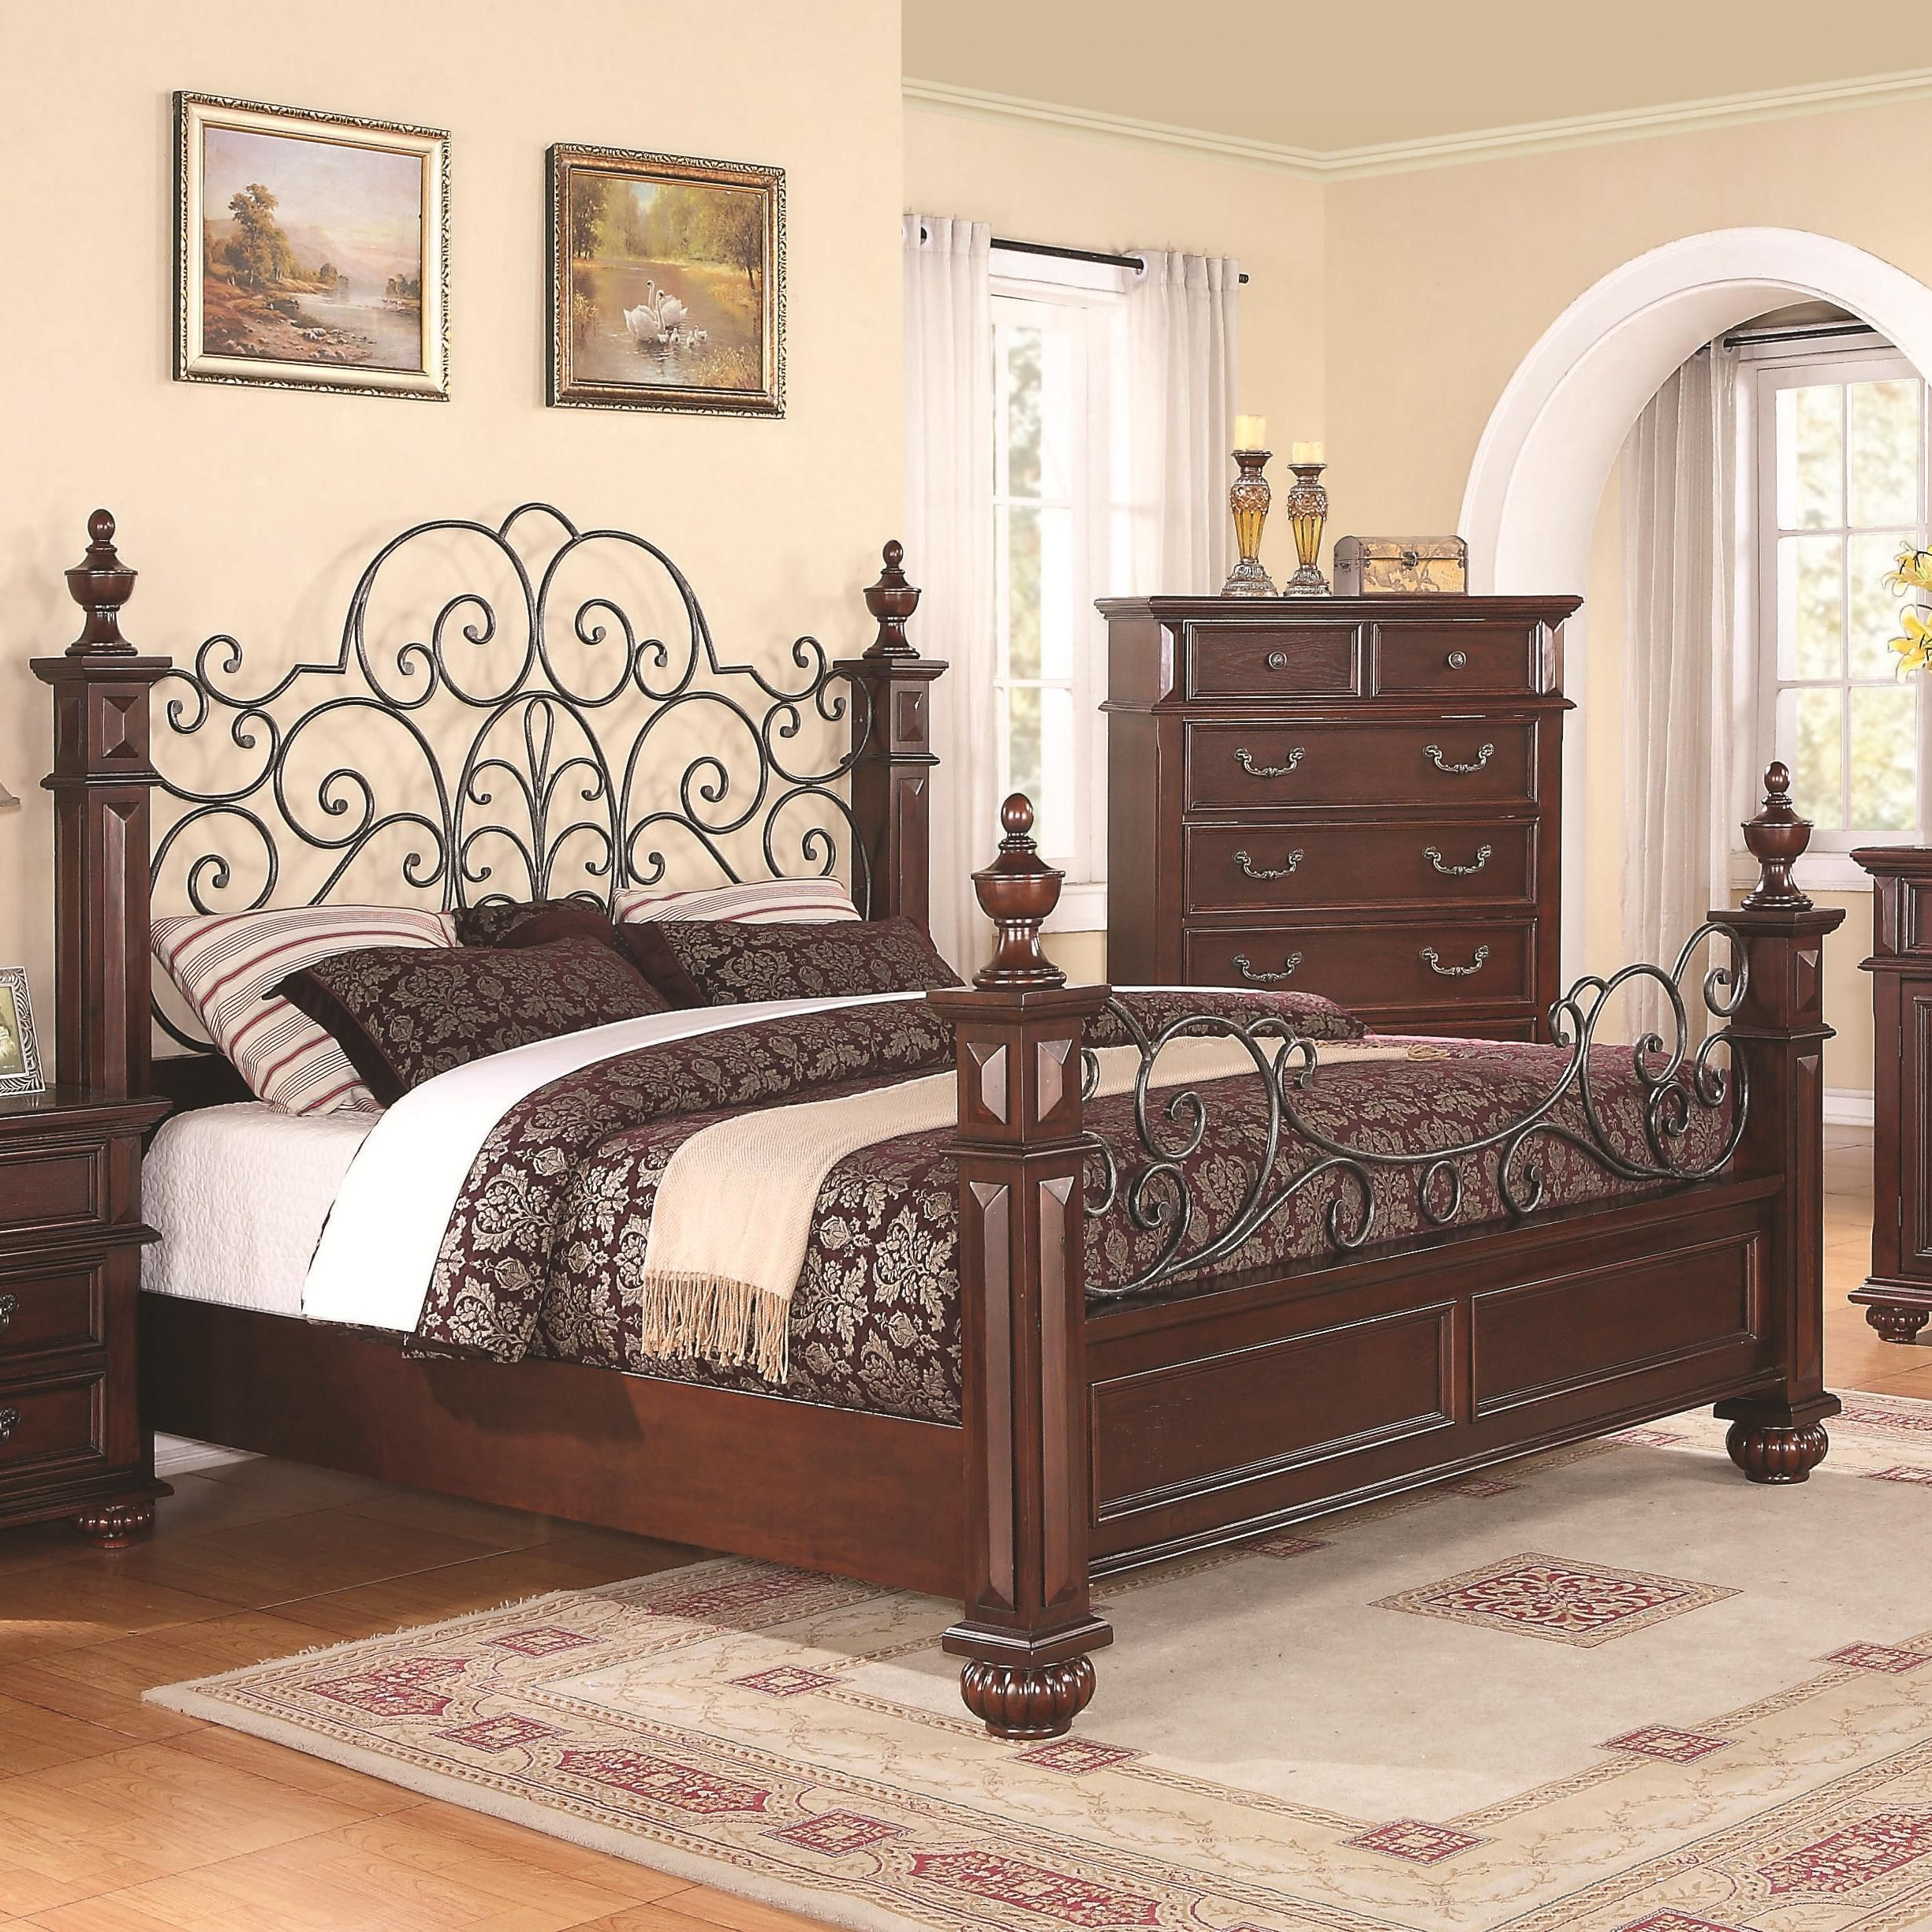 Low wood wrought iron king size bed dream home for Wrought iron bedroom furniture